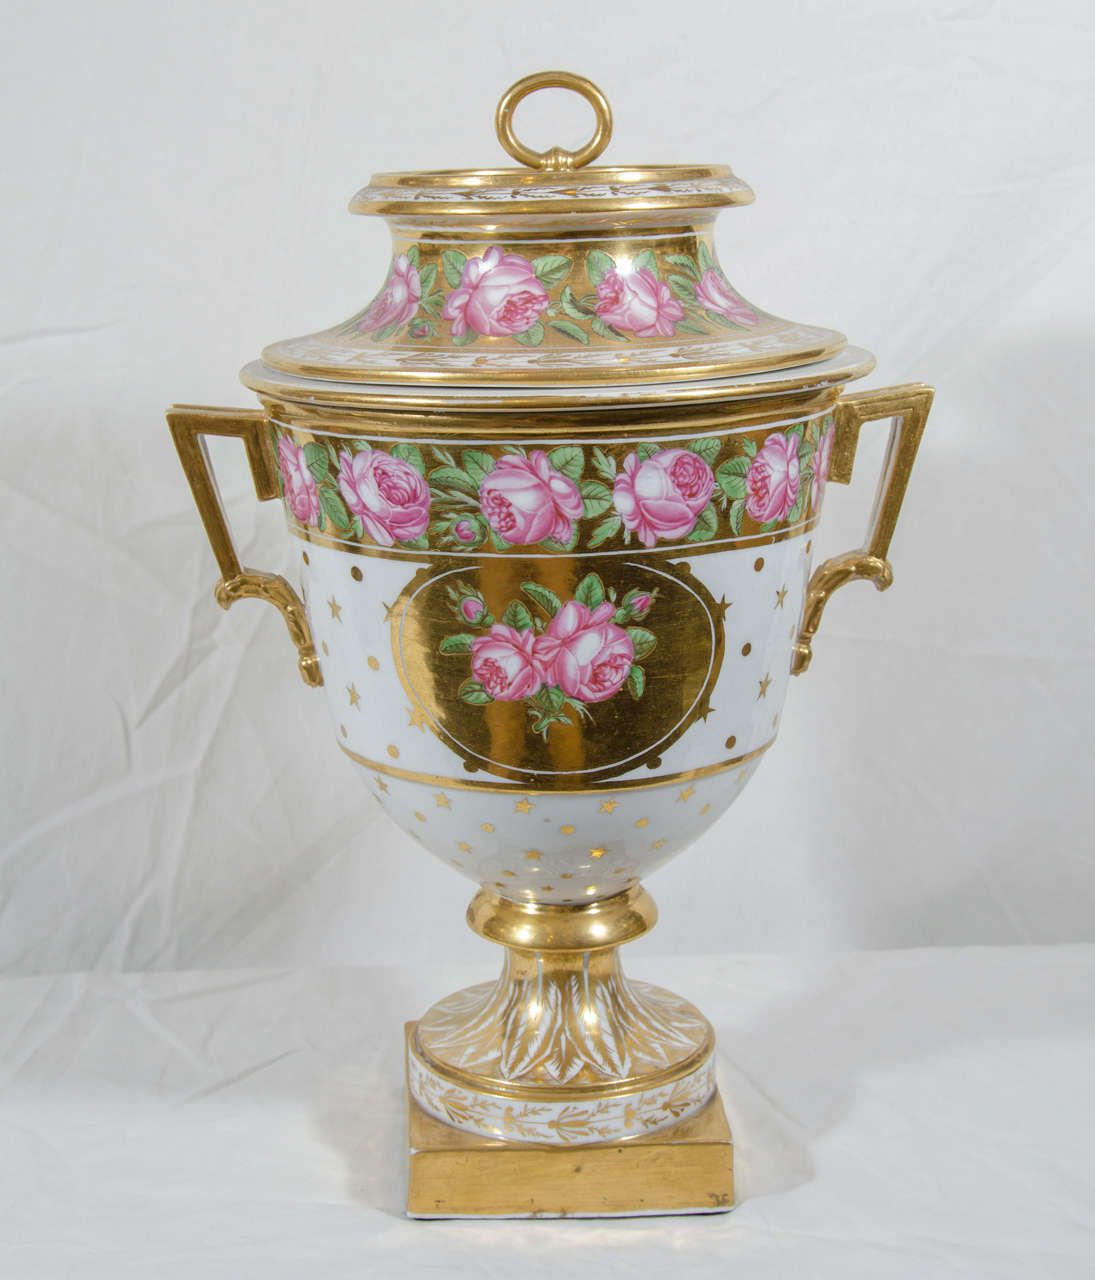 A pair of exceptional Spode ice pails large, richly gilded and beautifully painted with pink roses and green leaves on a gold ground. Ice pails were commonly placed on the sideboard and used as fruit coolers, often for serving iced cream with the fruit (also called fruit coolers). They were the 18th and 19th century equivalent of today's ice cream maker.